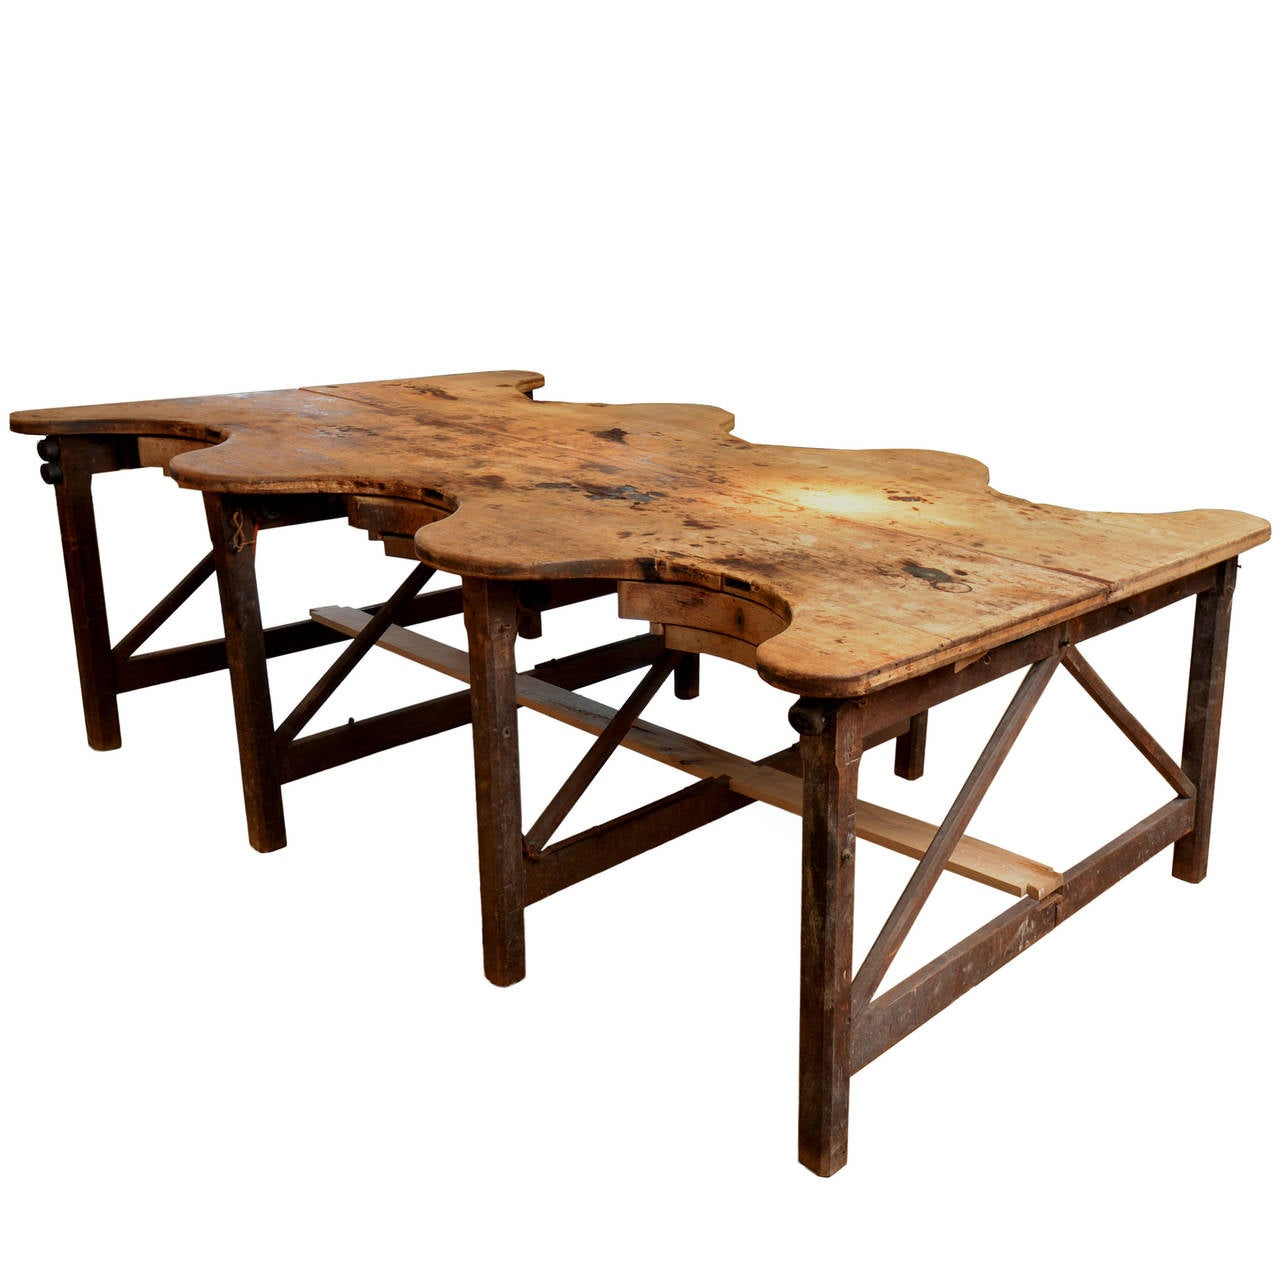 1920s vintage goldsmith work table at 1stdibs for Furniture work table